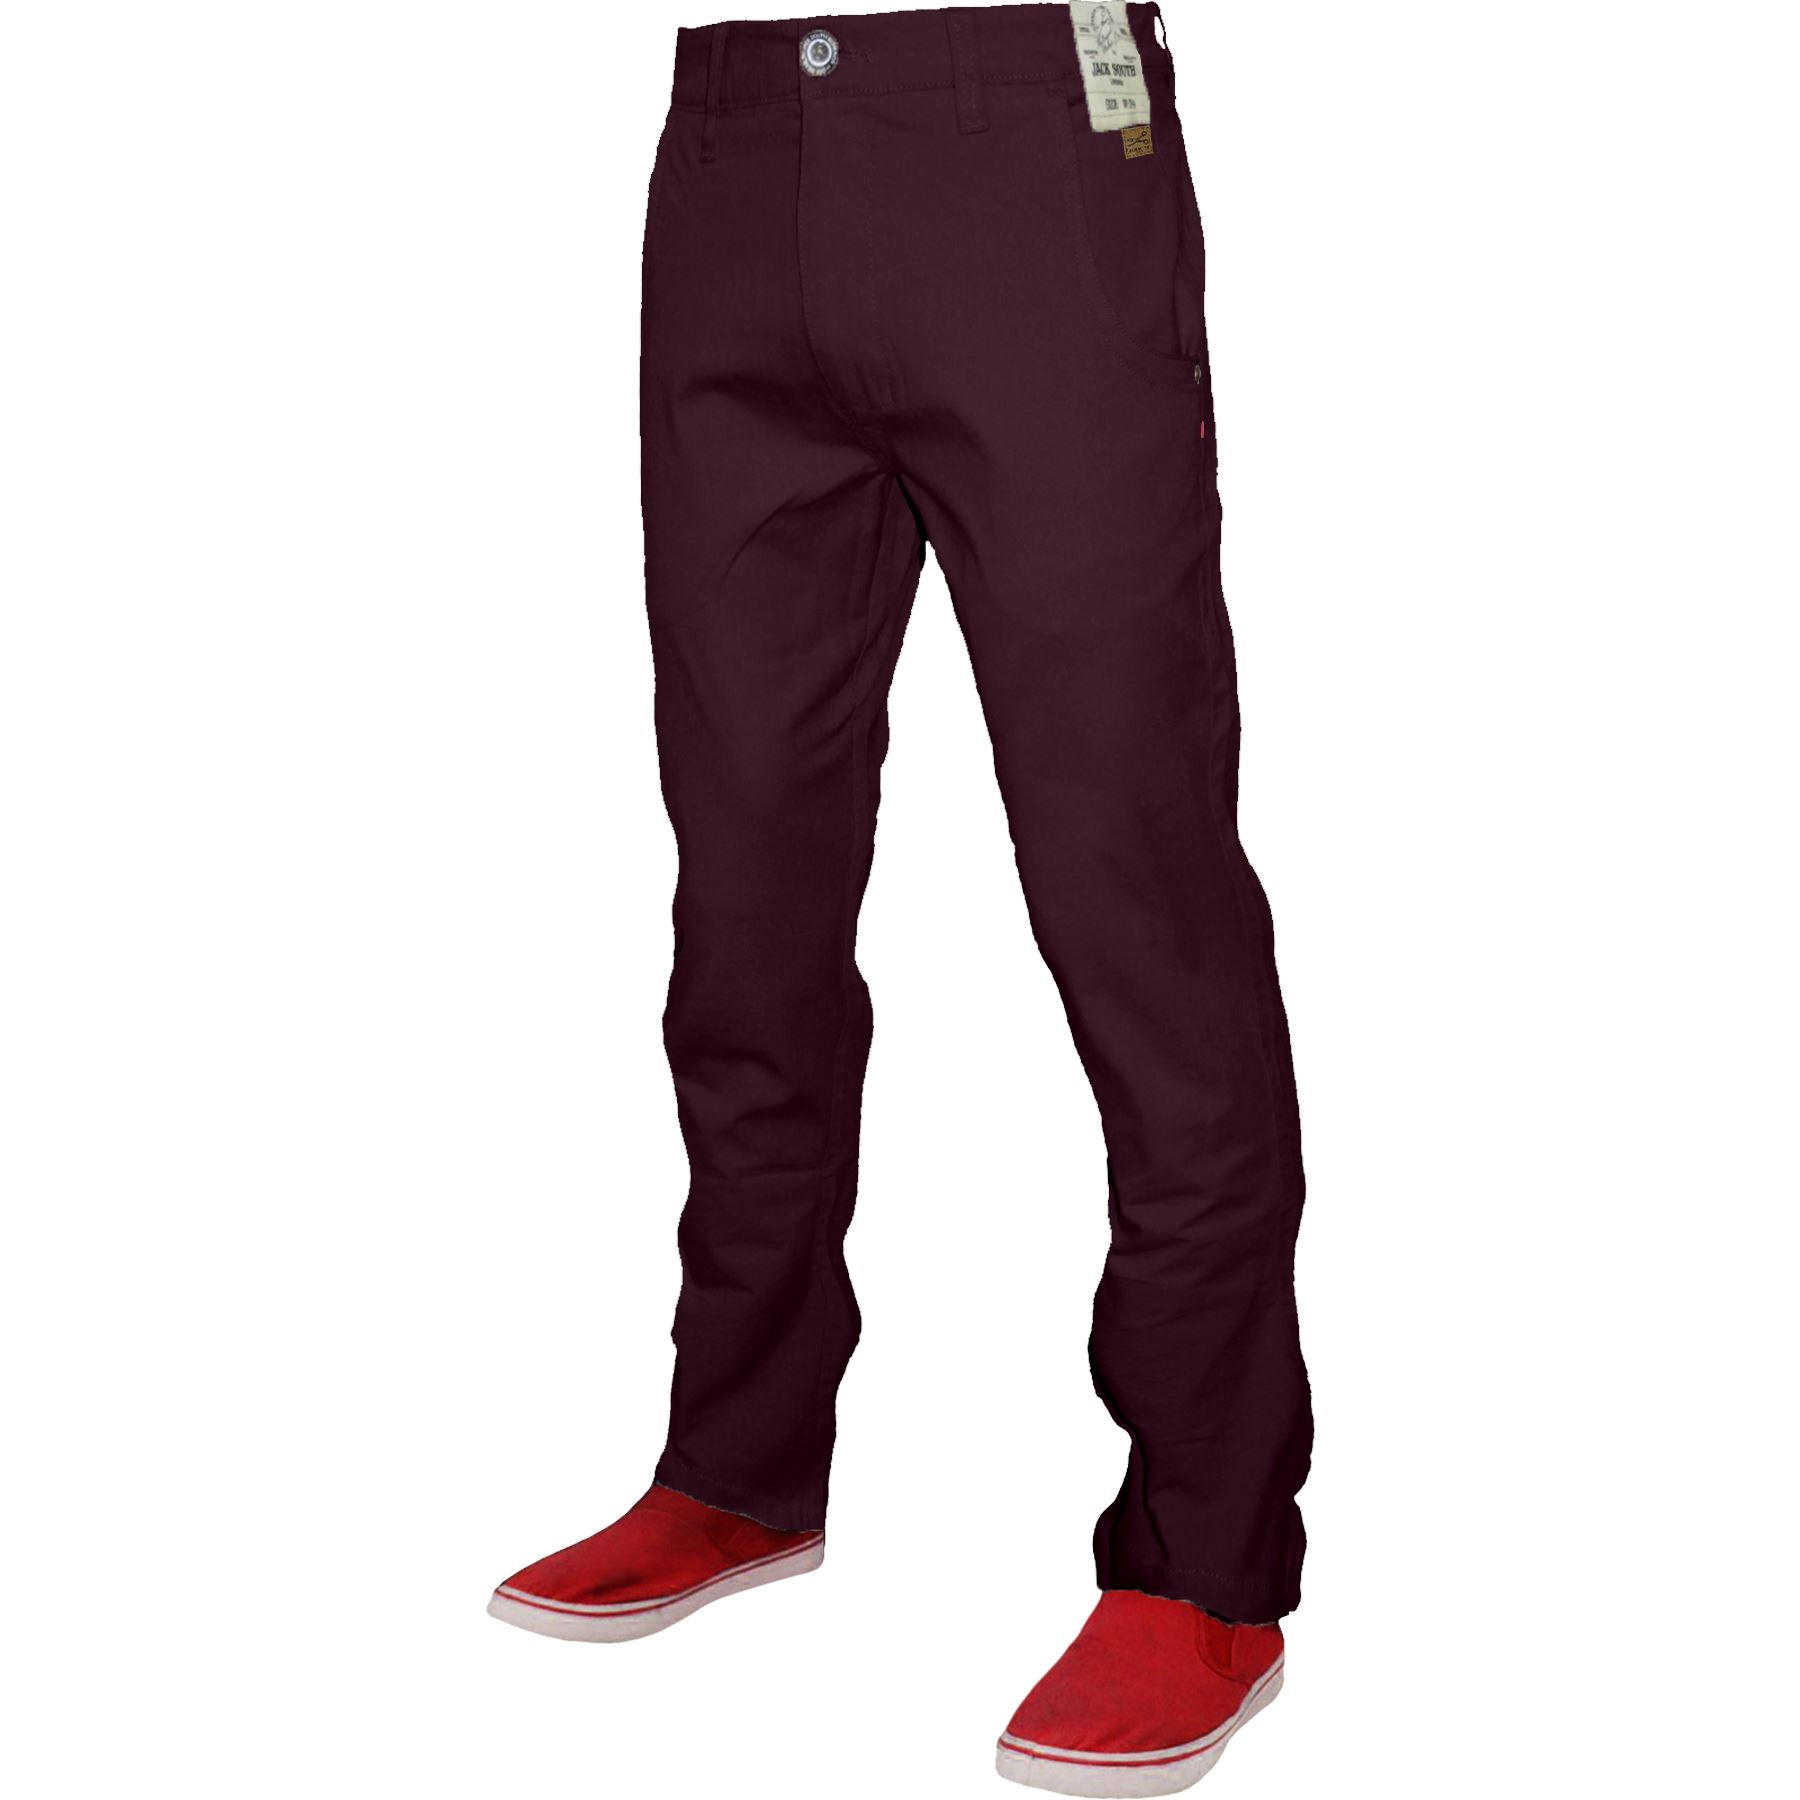 New Mens Chino Pants Cotton Slim Regular Fit Stretch Casual Designer Trousers